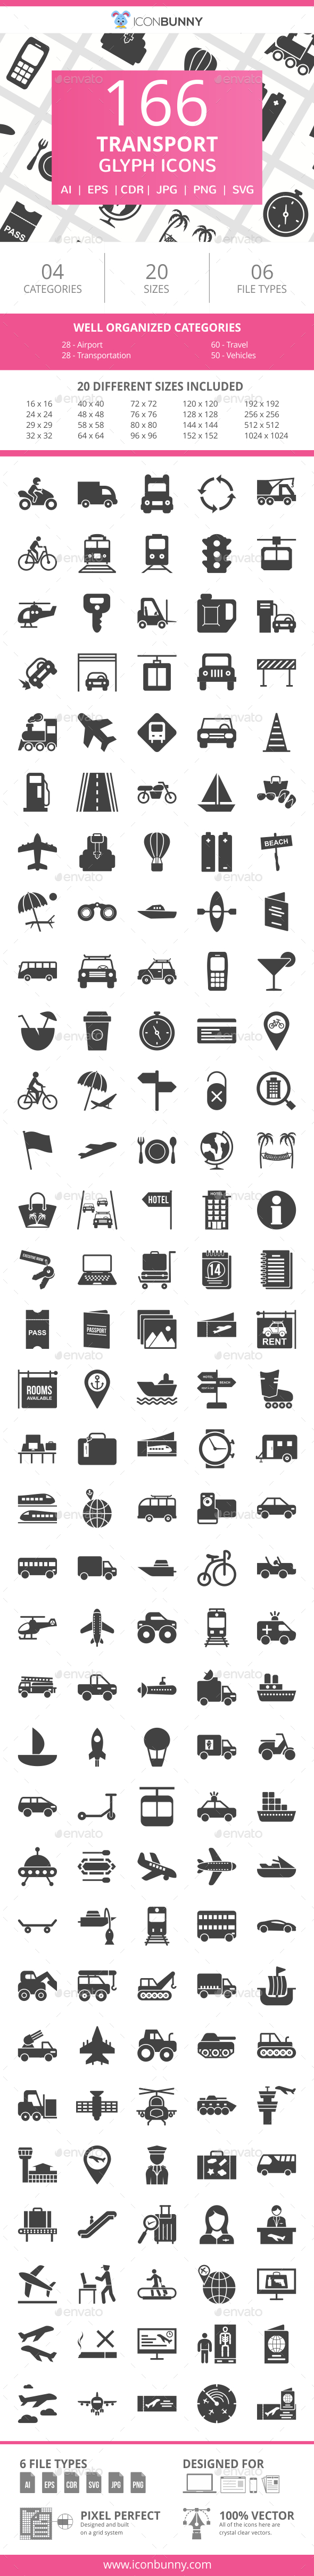 166 Transport Glyph Icons - Icons